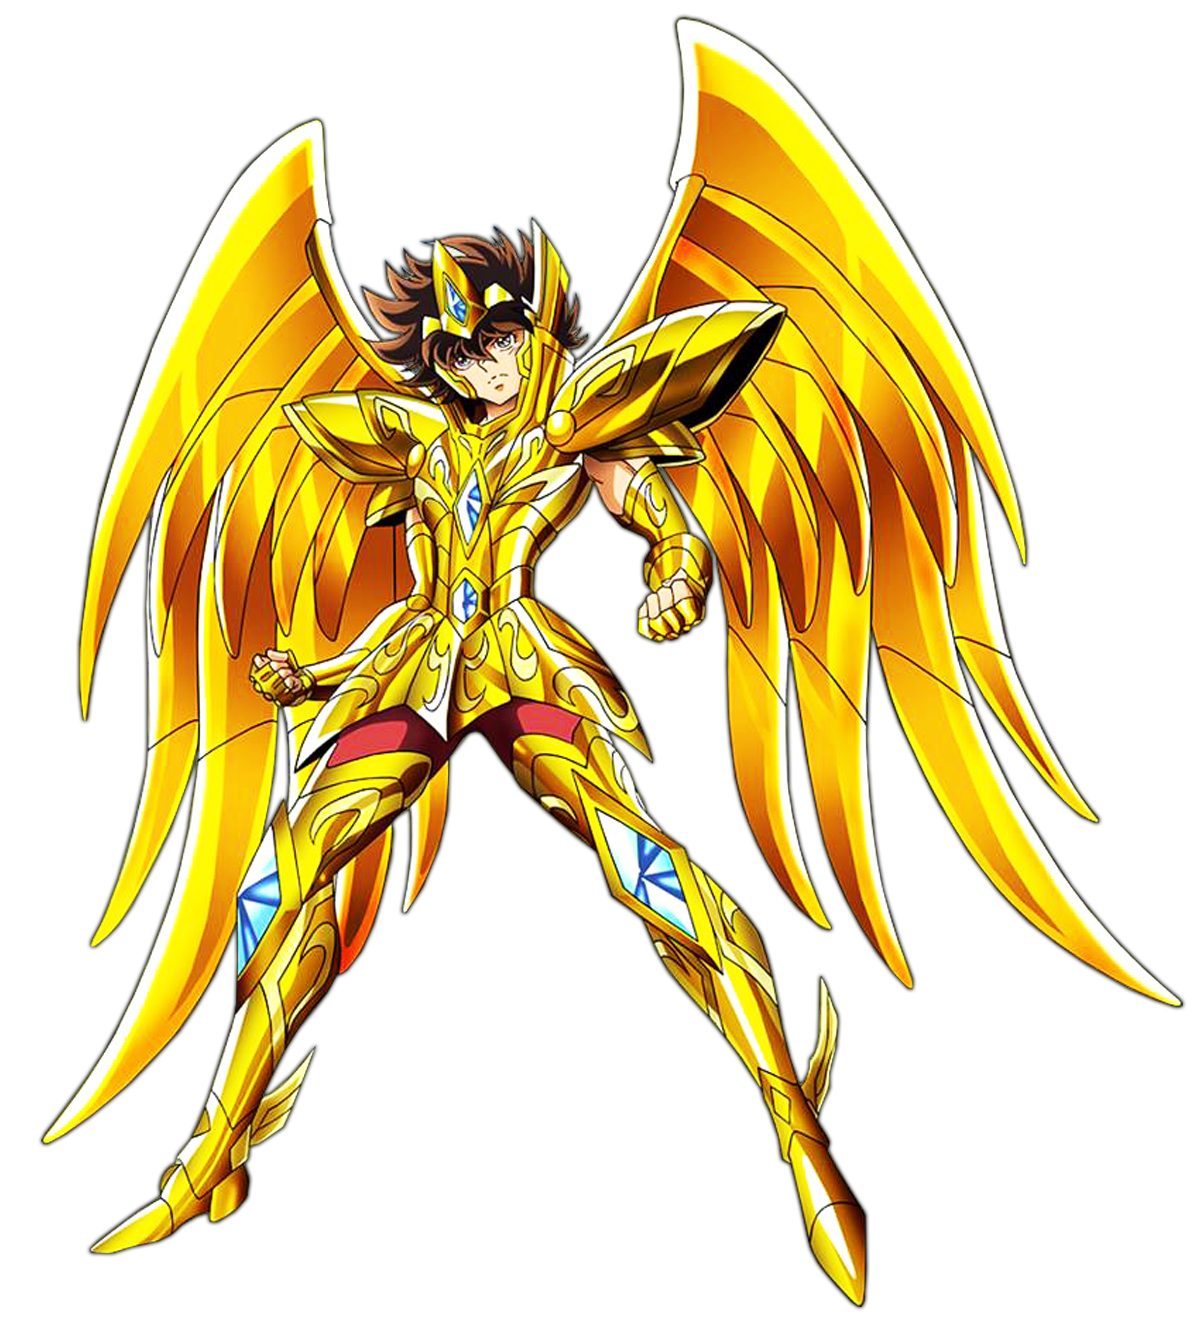 Sagittarius drawing saint seiya. Omega render v by